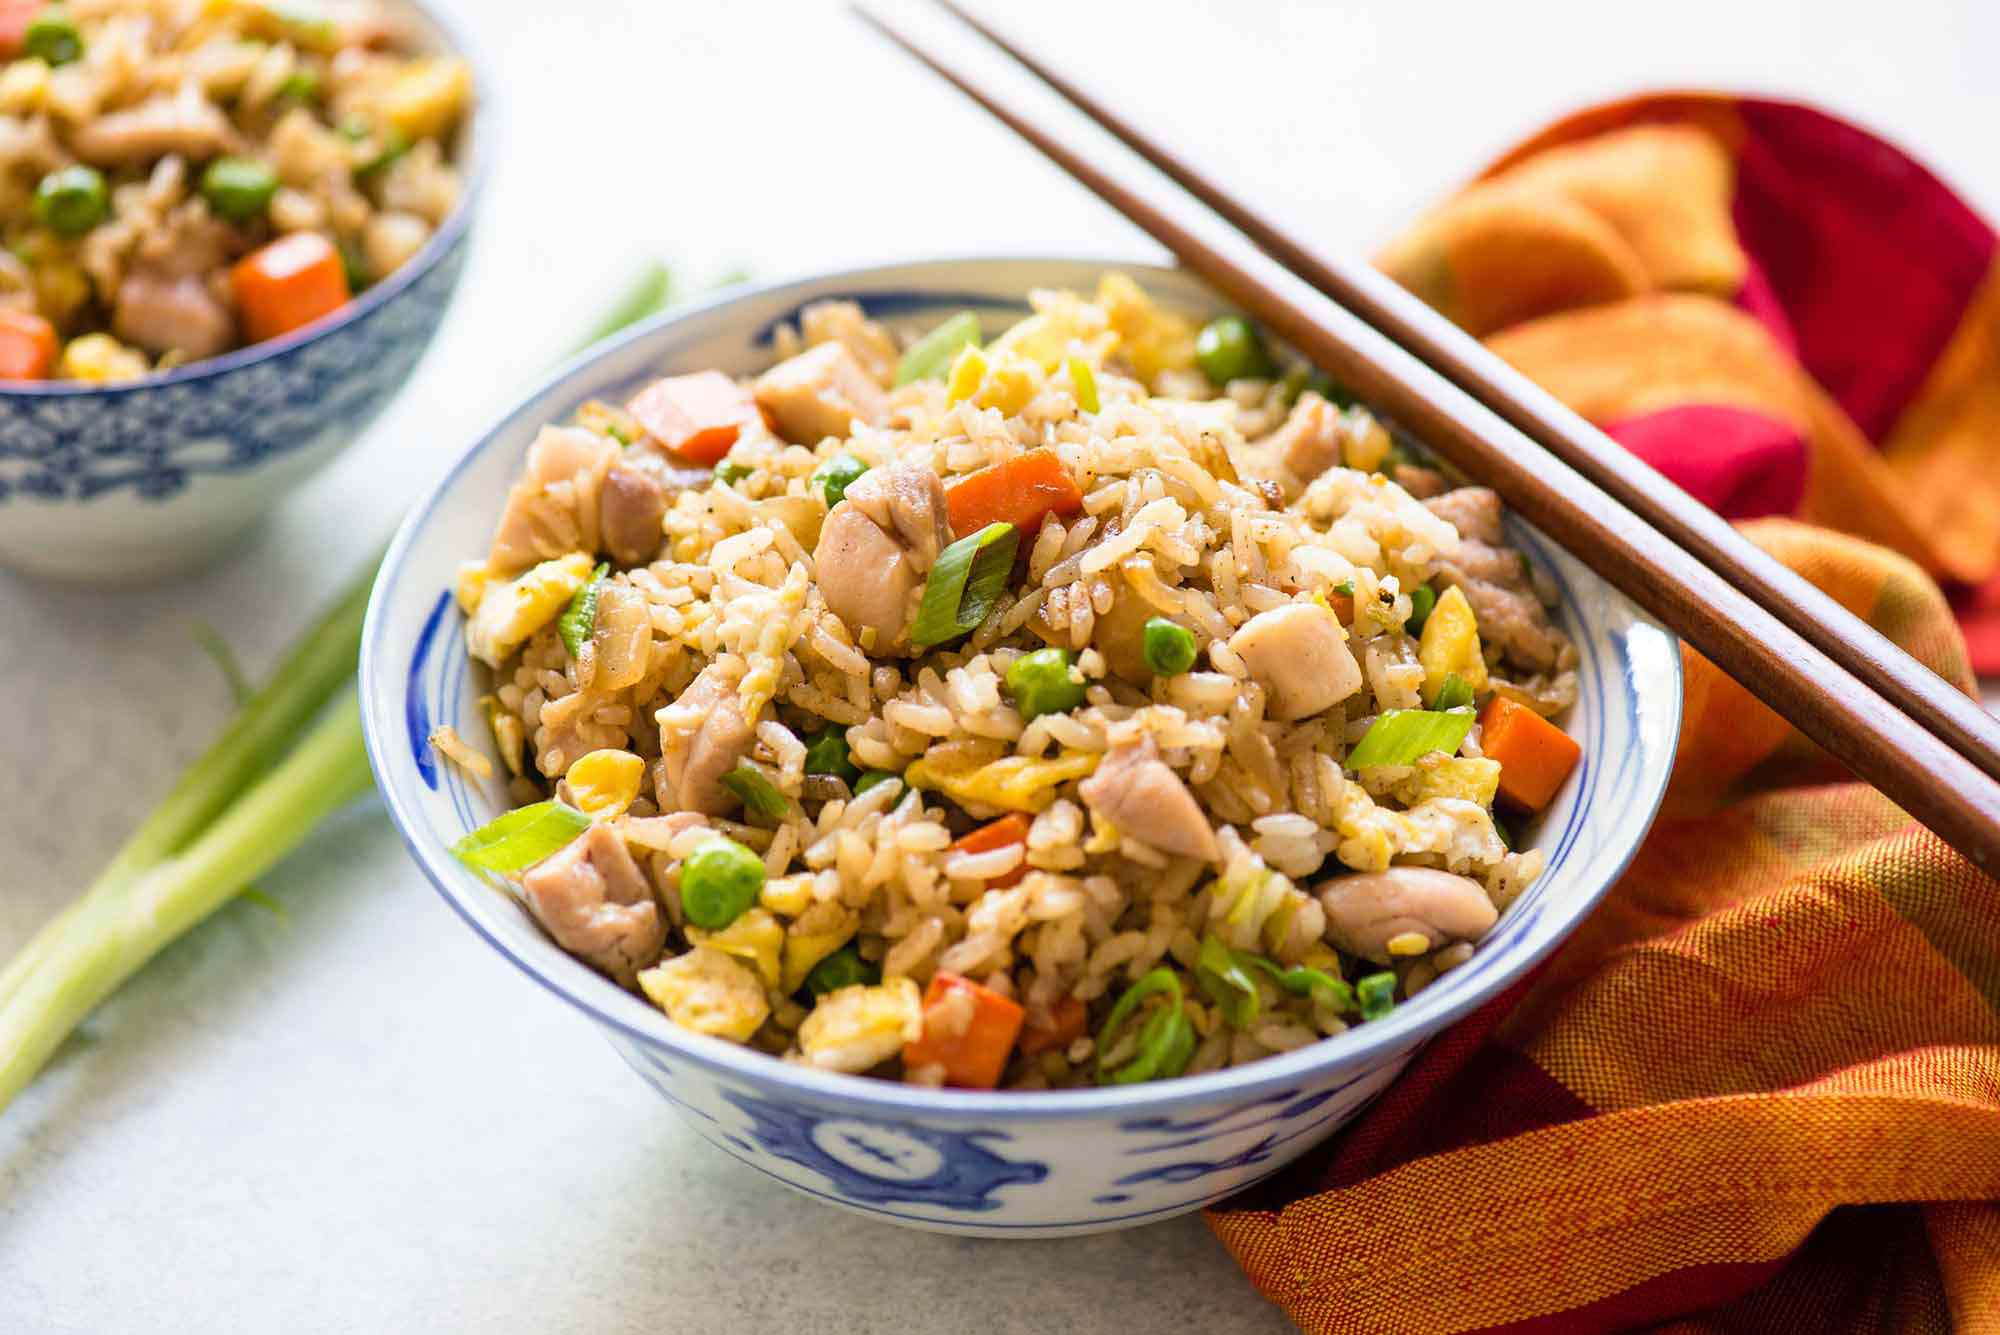 Chicken Fried Rice recipe in a bowl with chopsticks